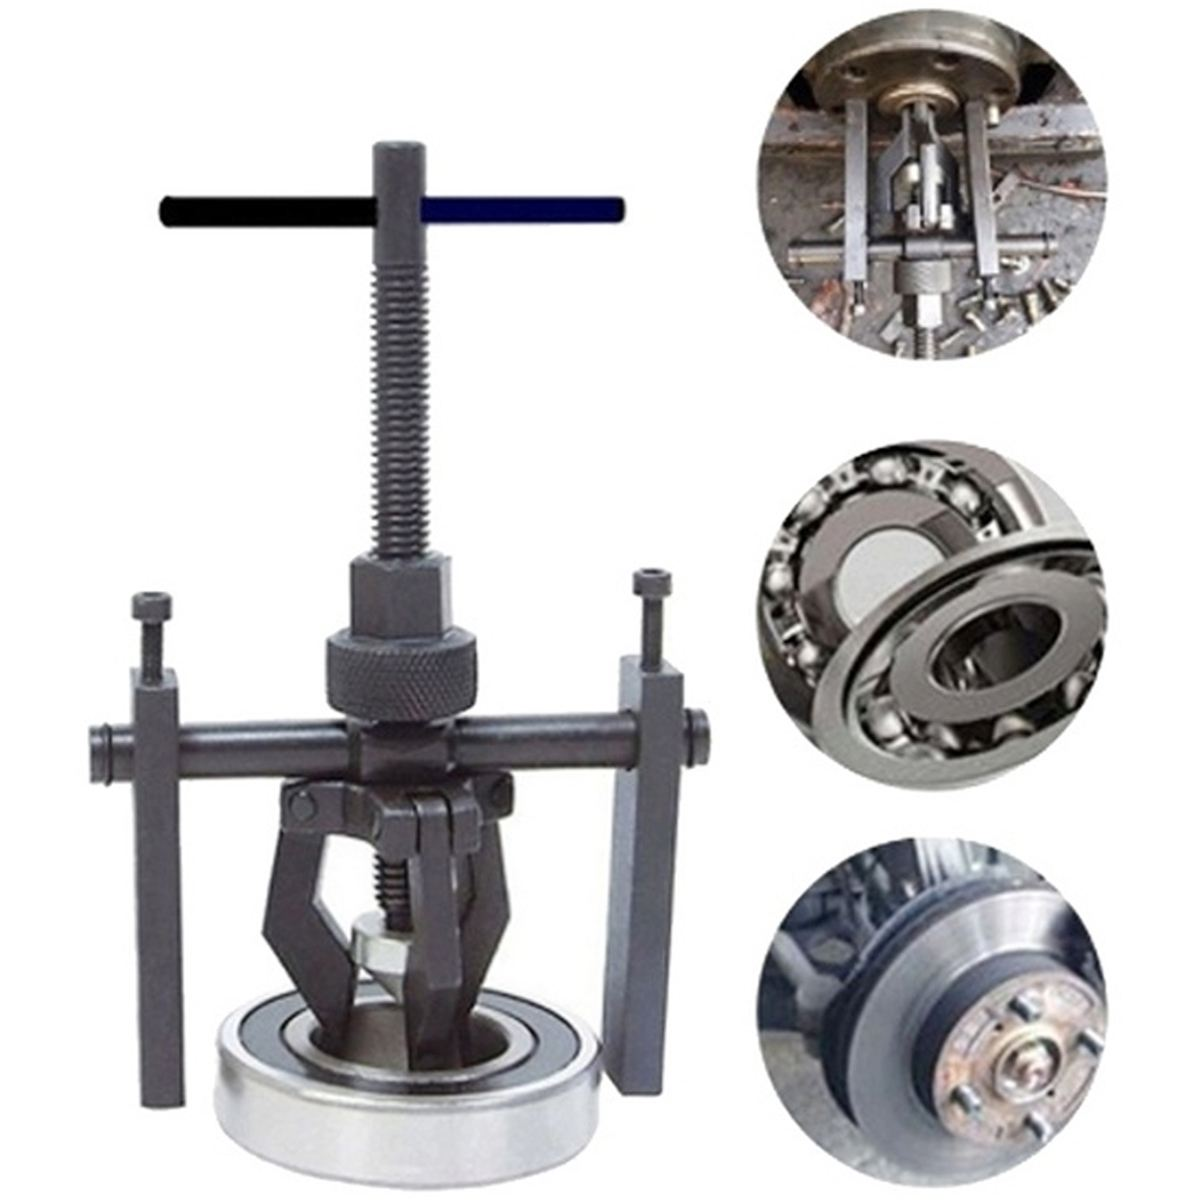 Car Auto Steel 3-jaw Inner Bearing Puller Gear Extractor Heavy Duty Automotive Machine Tool Kit